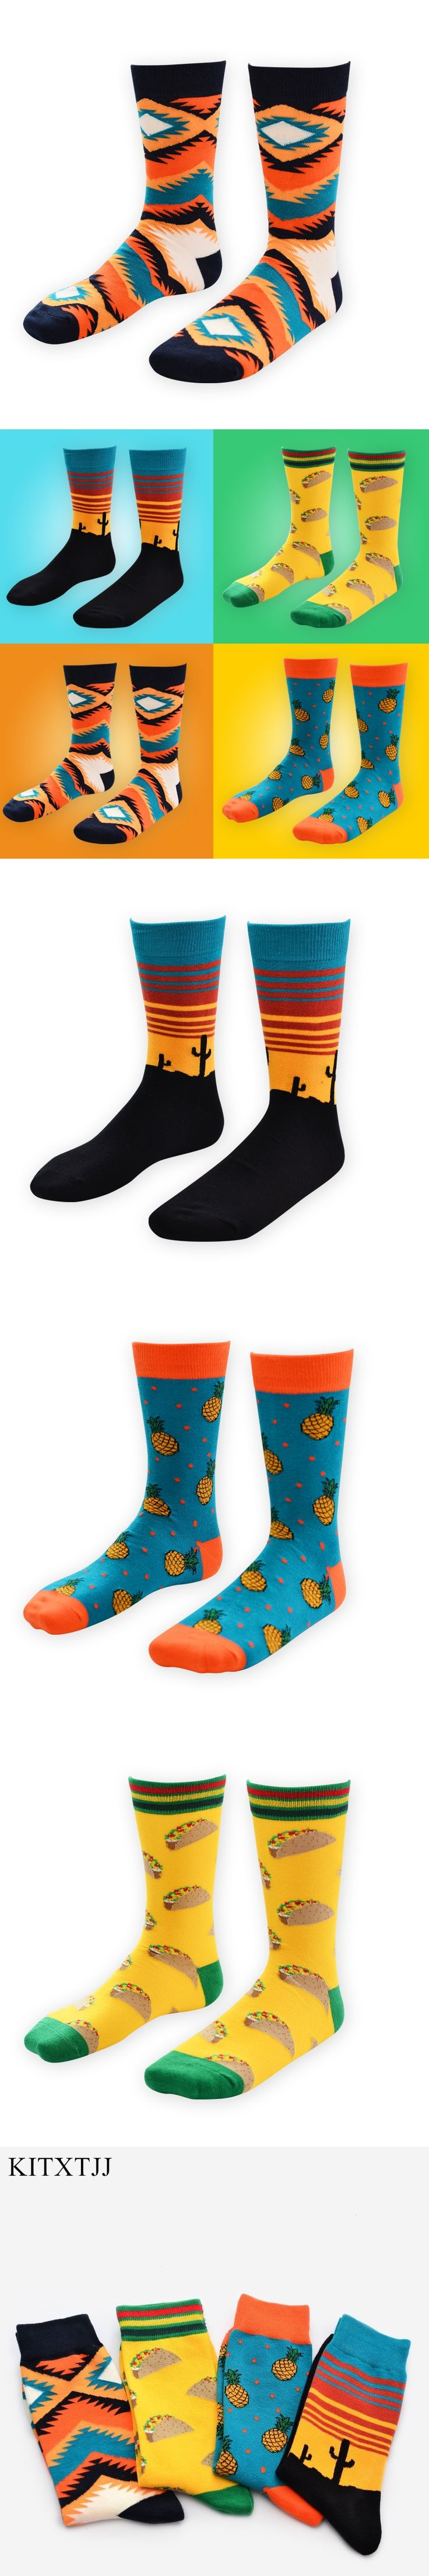 New Fashion Men Socks Crew Long Skate Casual Happy Funny Brand Calcetines Compression Hombre Meias Winter Sokken Sox Wholesale